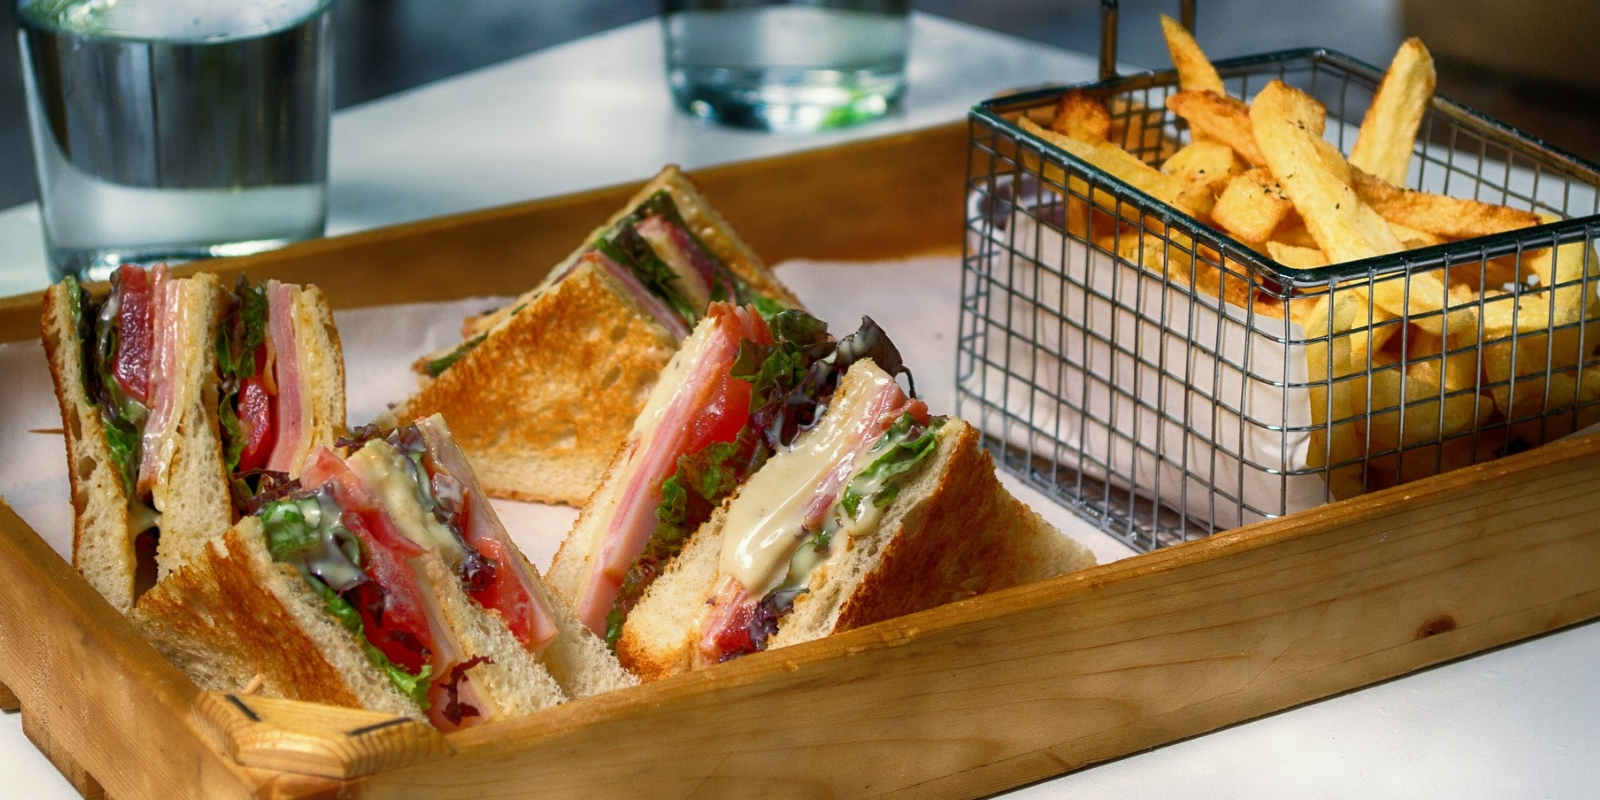 club sandwich and fries in basket